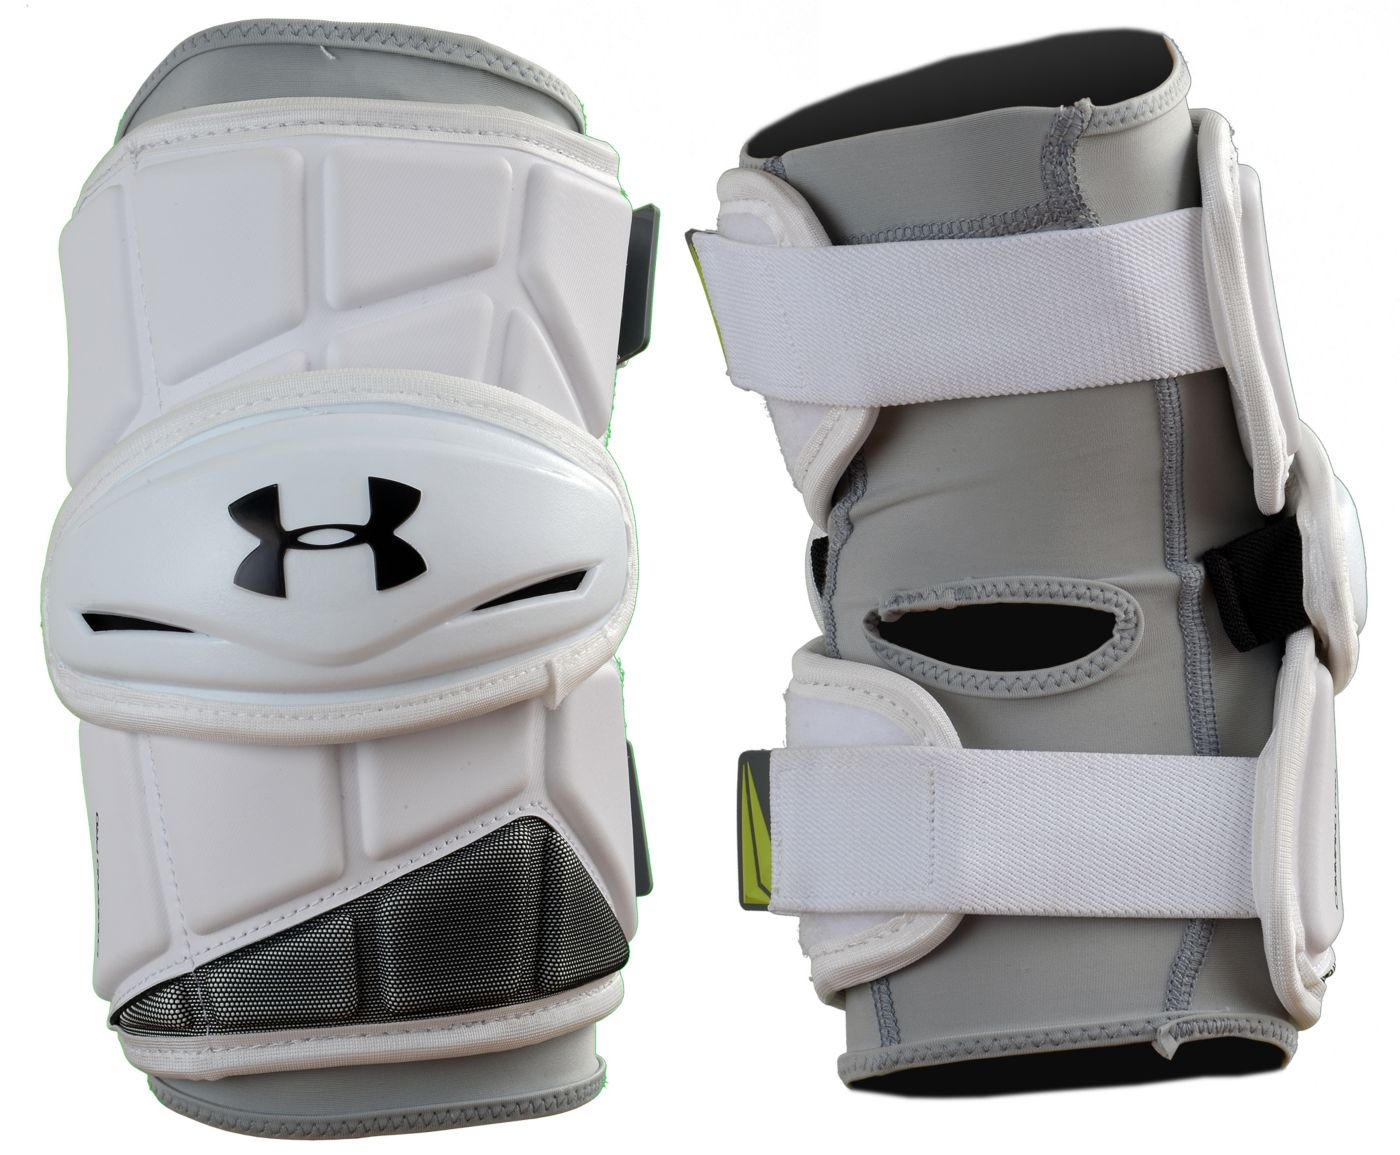 Under Armour Men's Command Pro 3 Lacrosse Arm Pads